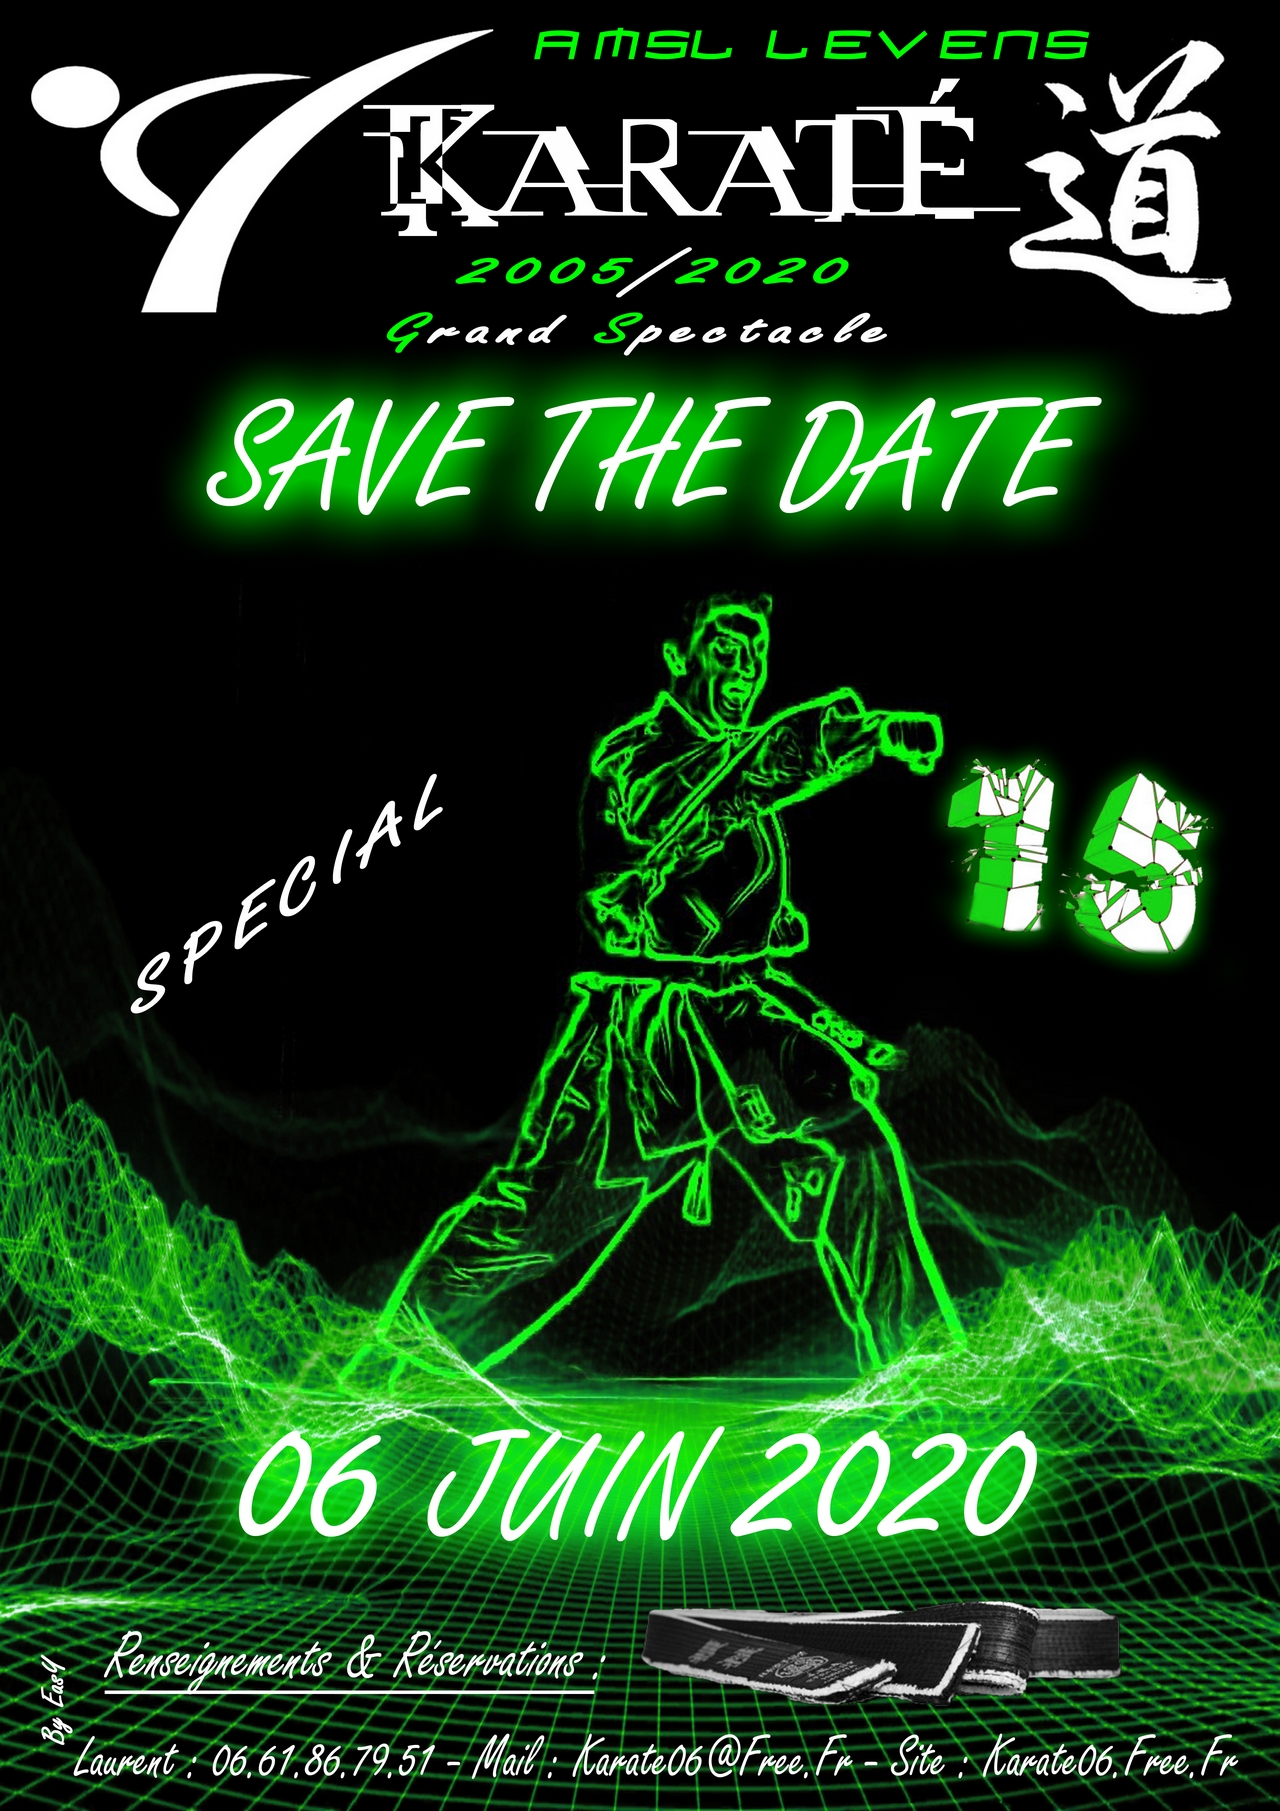 20-06-06 - Save the Date